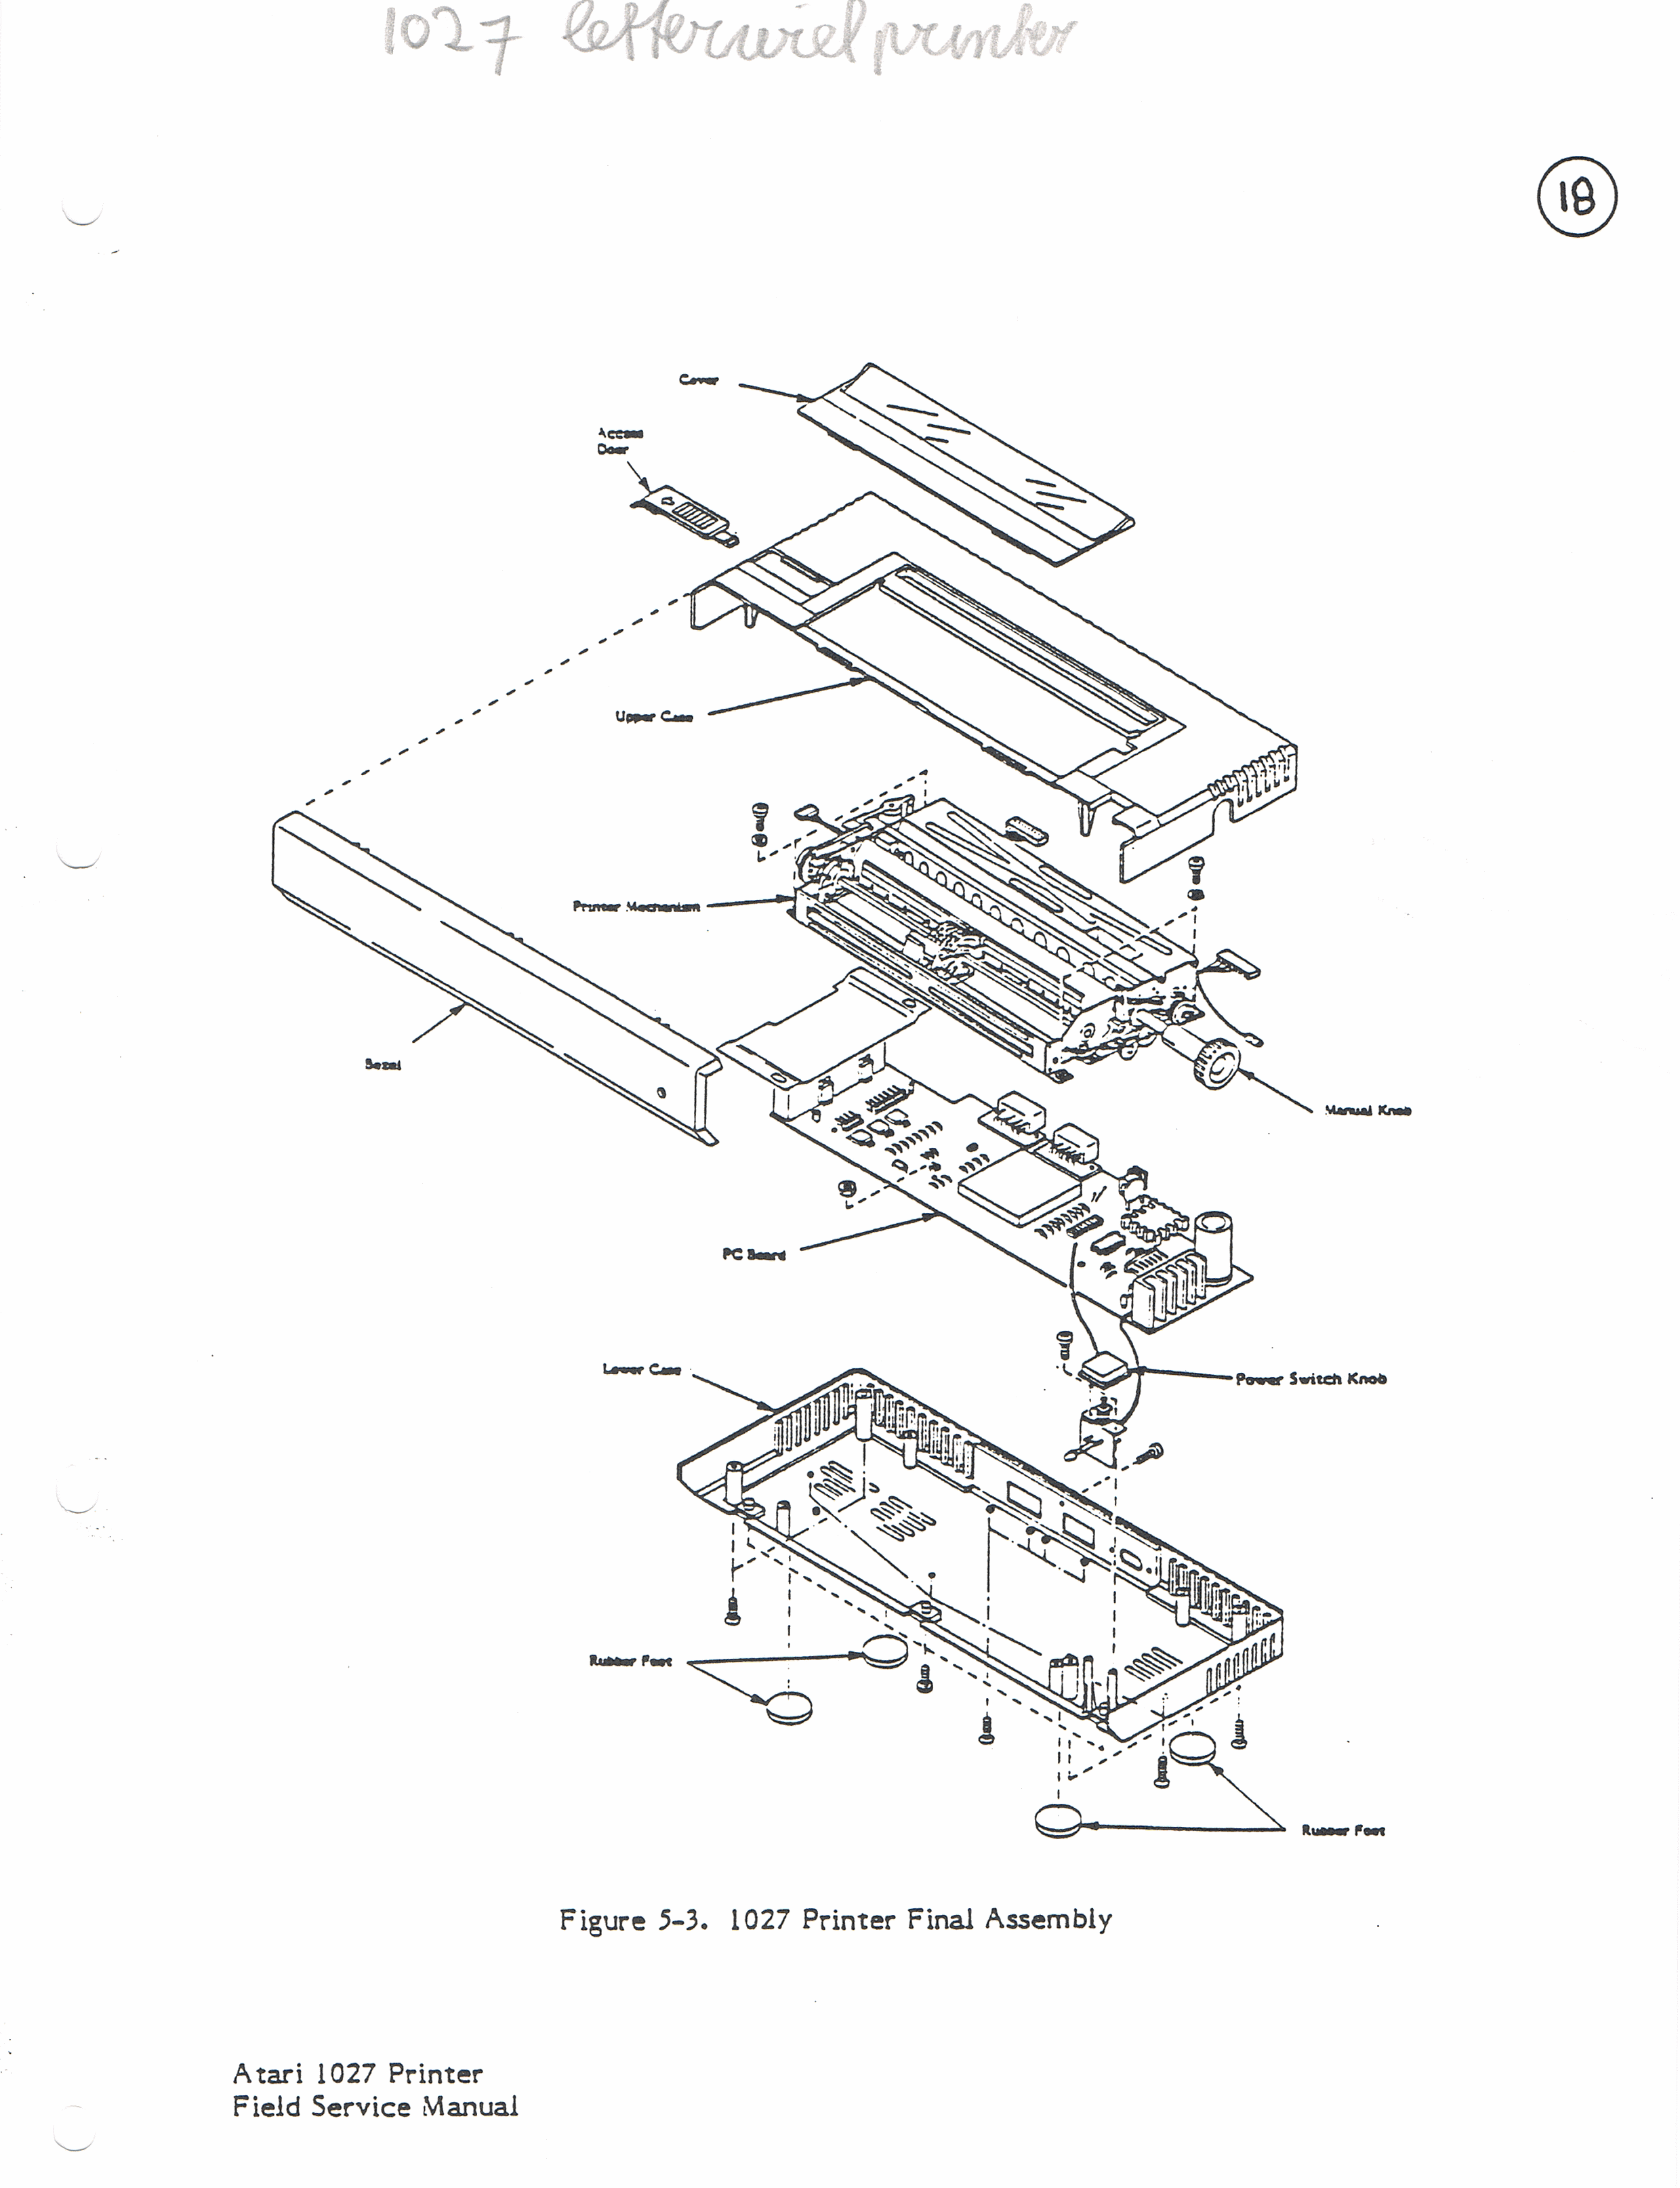 who has the 1027 printer service manual or schematics  - atari 8-bit computers